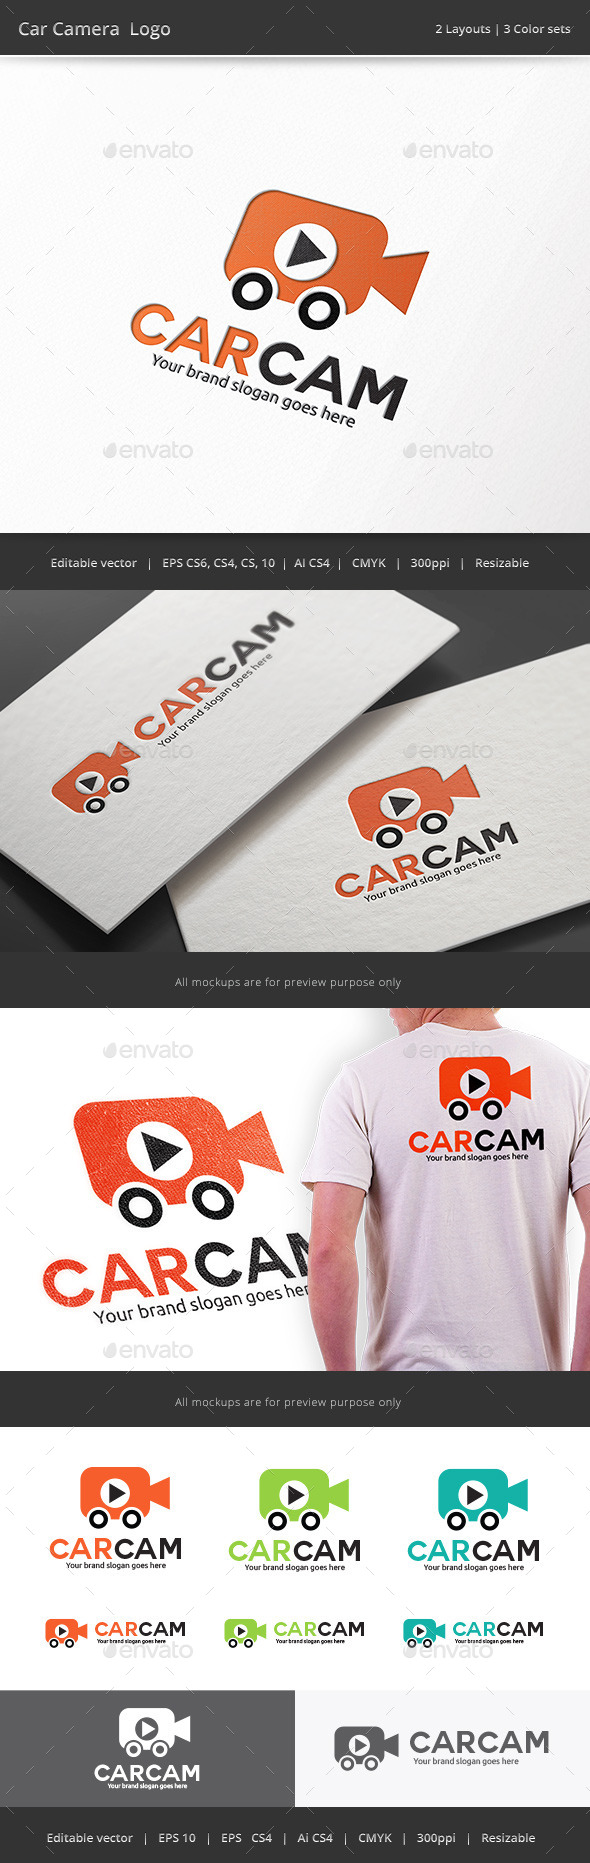 Car Camera Logo - Objects Logo Templates